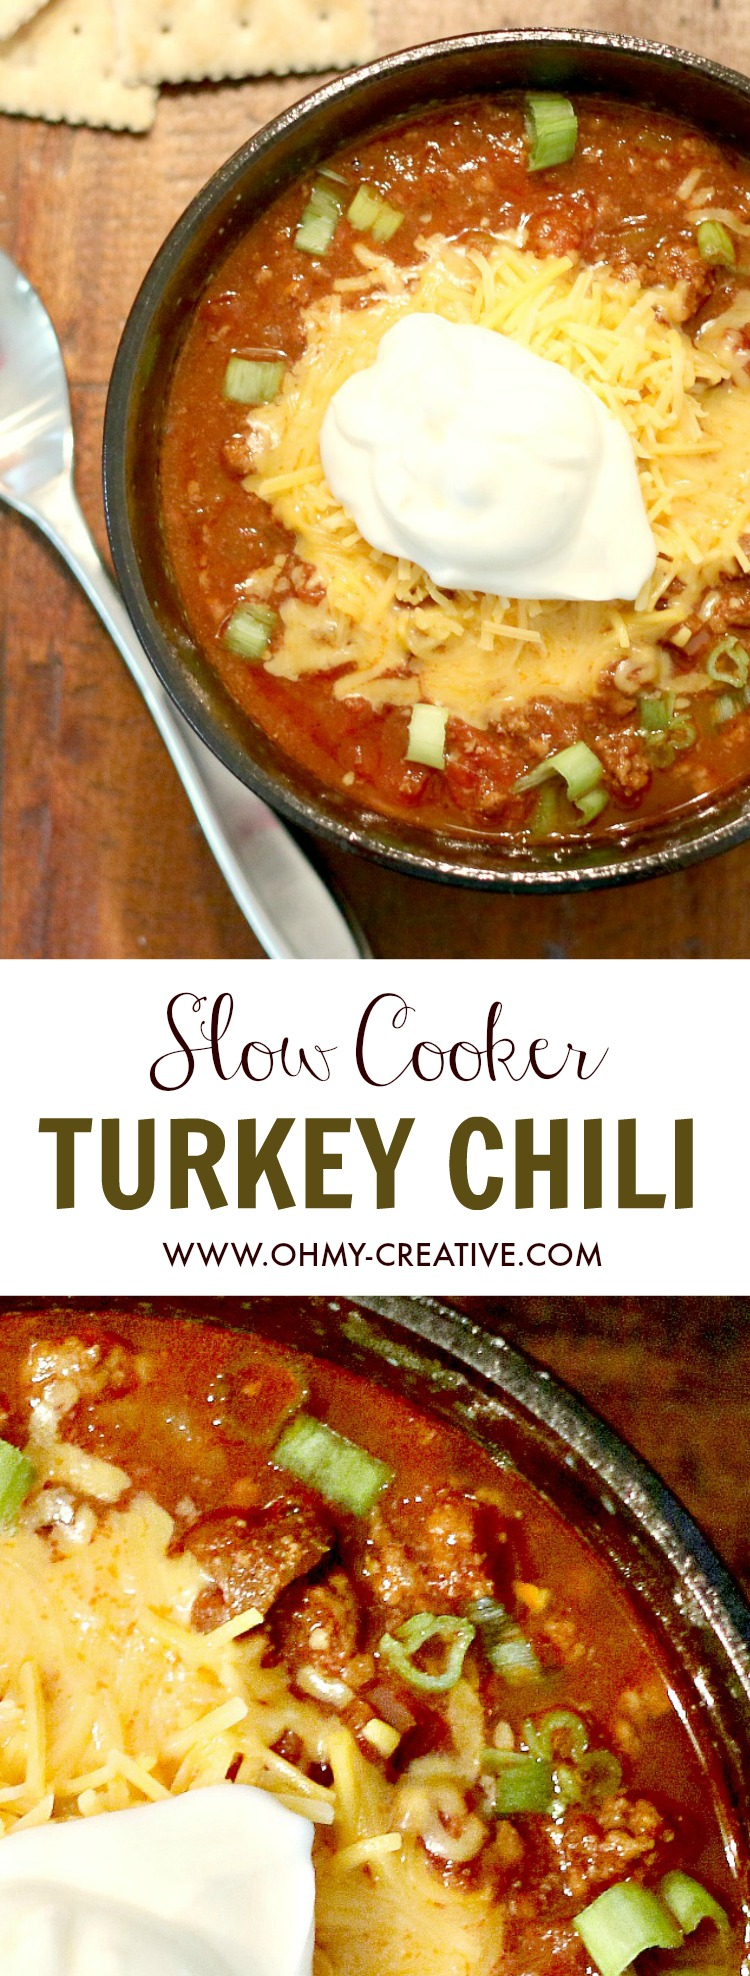 This Slow Cooker Turkey Chili Recipe is made with simple ingredients and bursting with flavor! A perfect quick and delicious meal the family with love. If you love crock pot recipes try this Turkey Chili for dinner or to serve on game day! | Popular recipes by OHMY-CREATIVE.COM